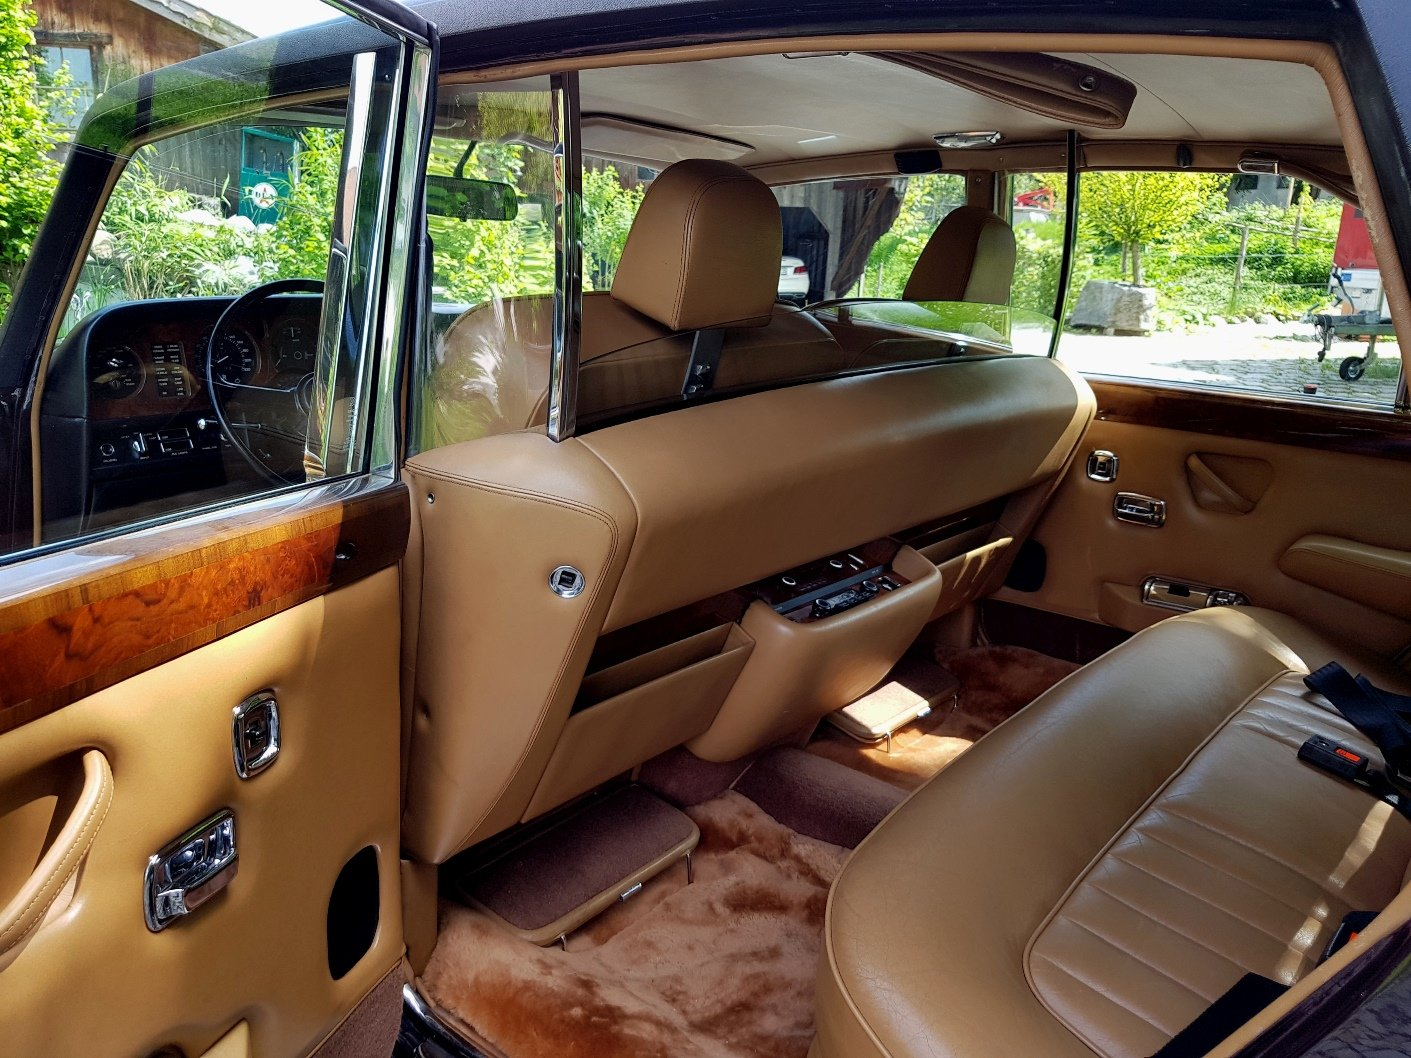 1980 Rolls Royce Silver Wraith II, electric division For Sale (picture 3 of 6)